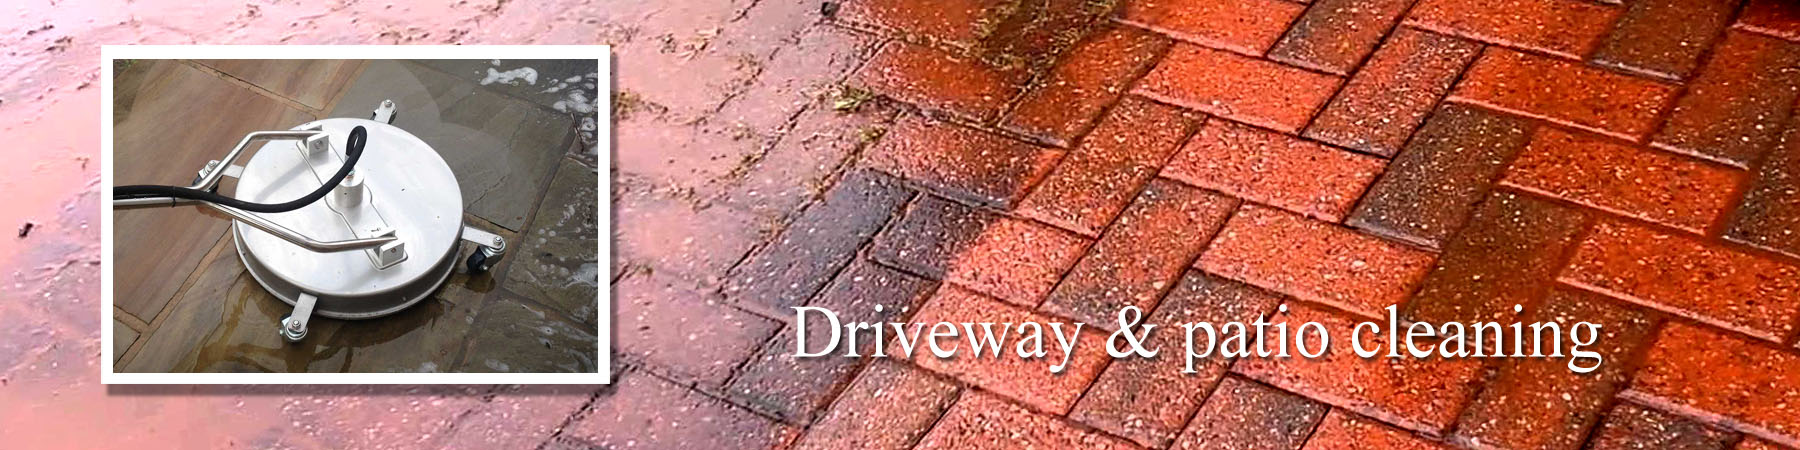 J.R. Driveway & Patio Cleaning Silver Hill J R Cleaning